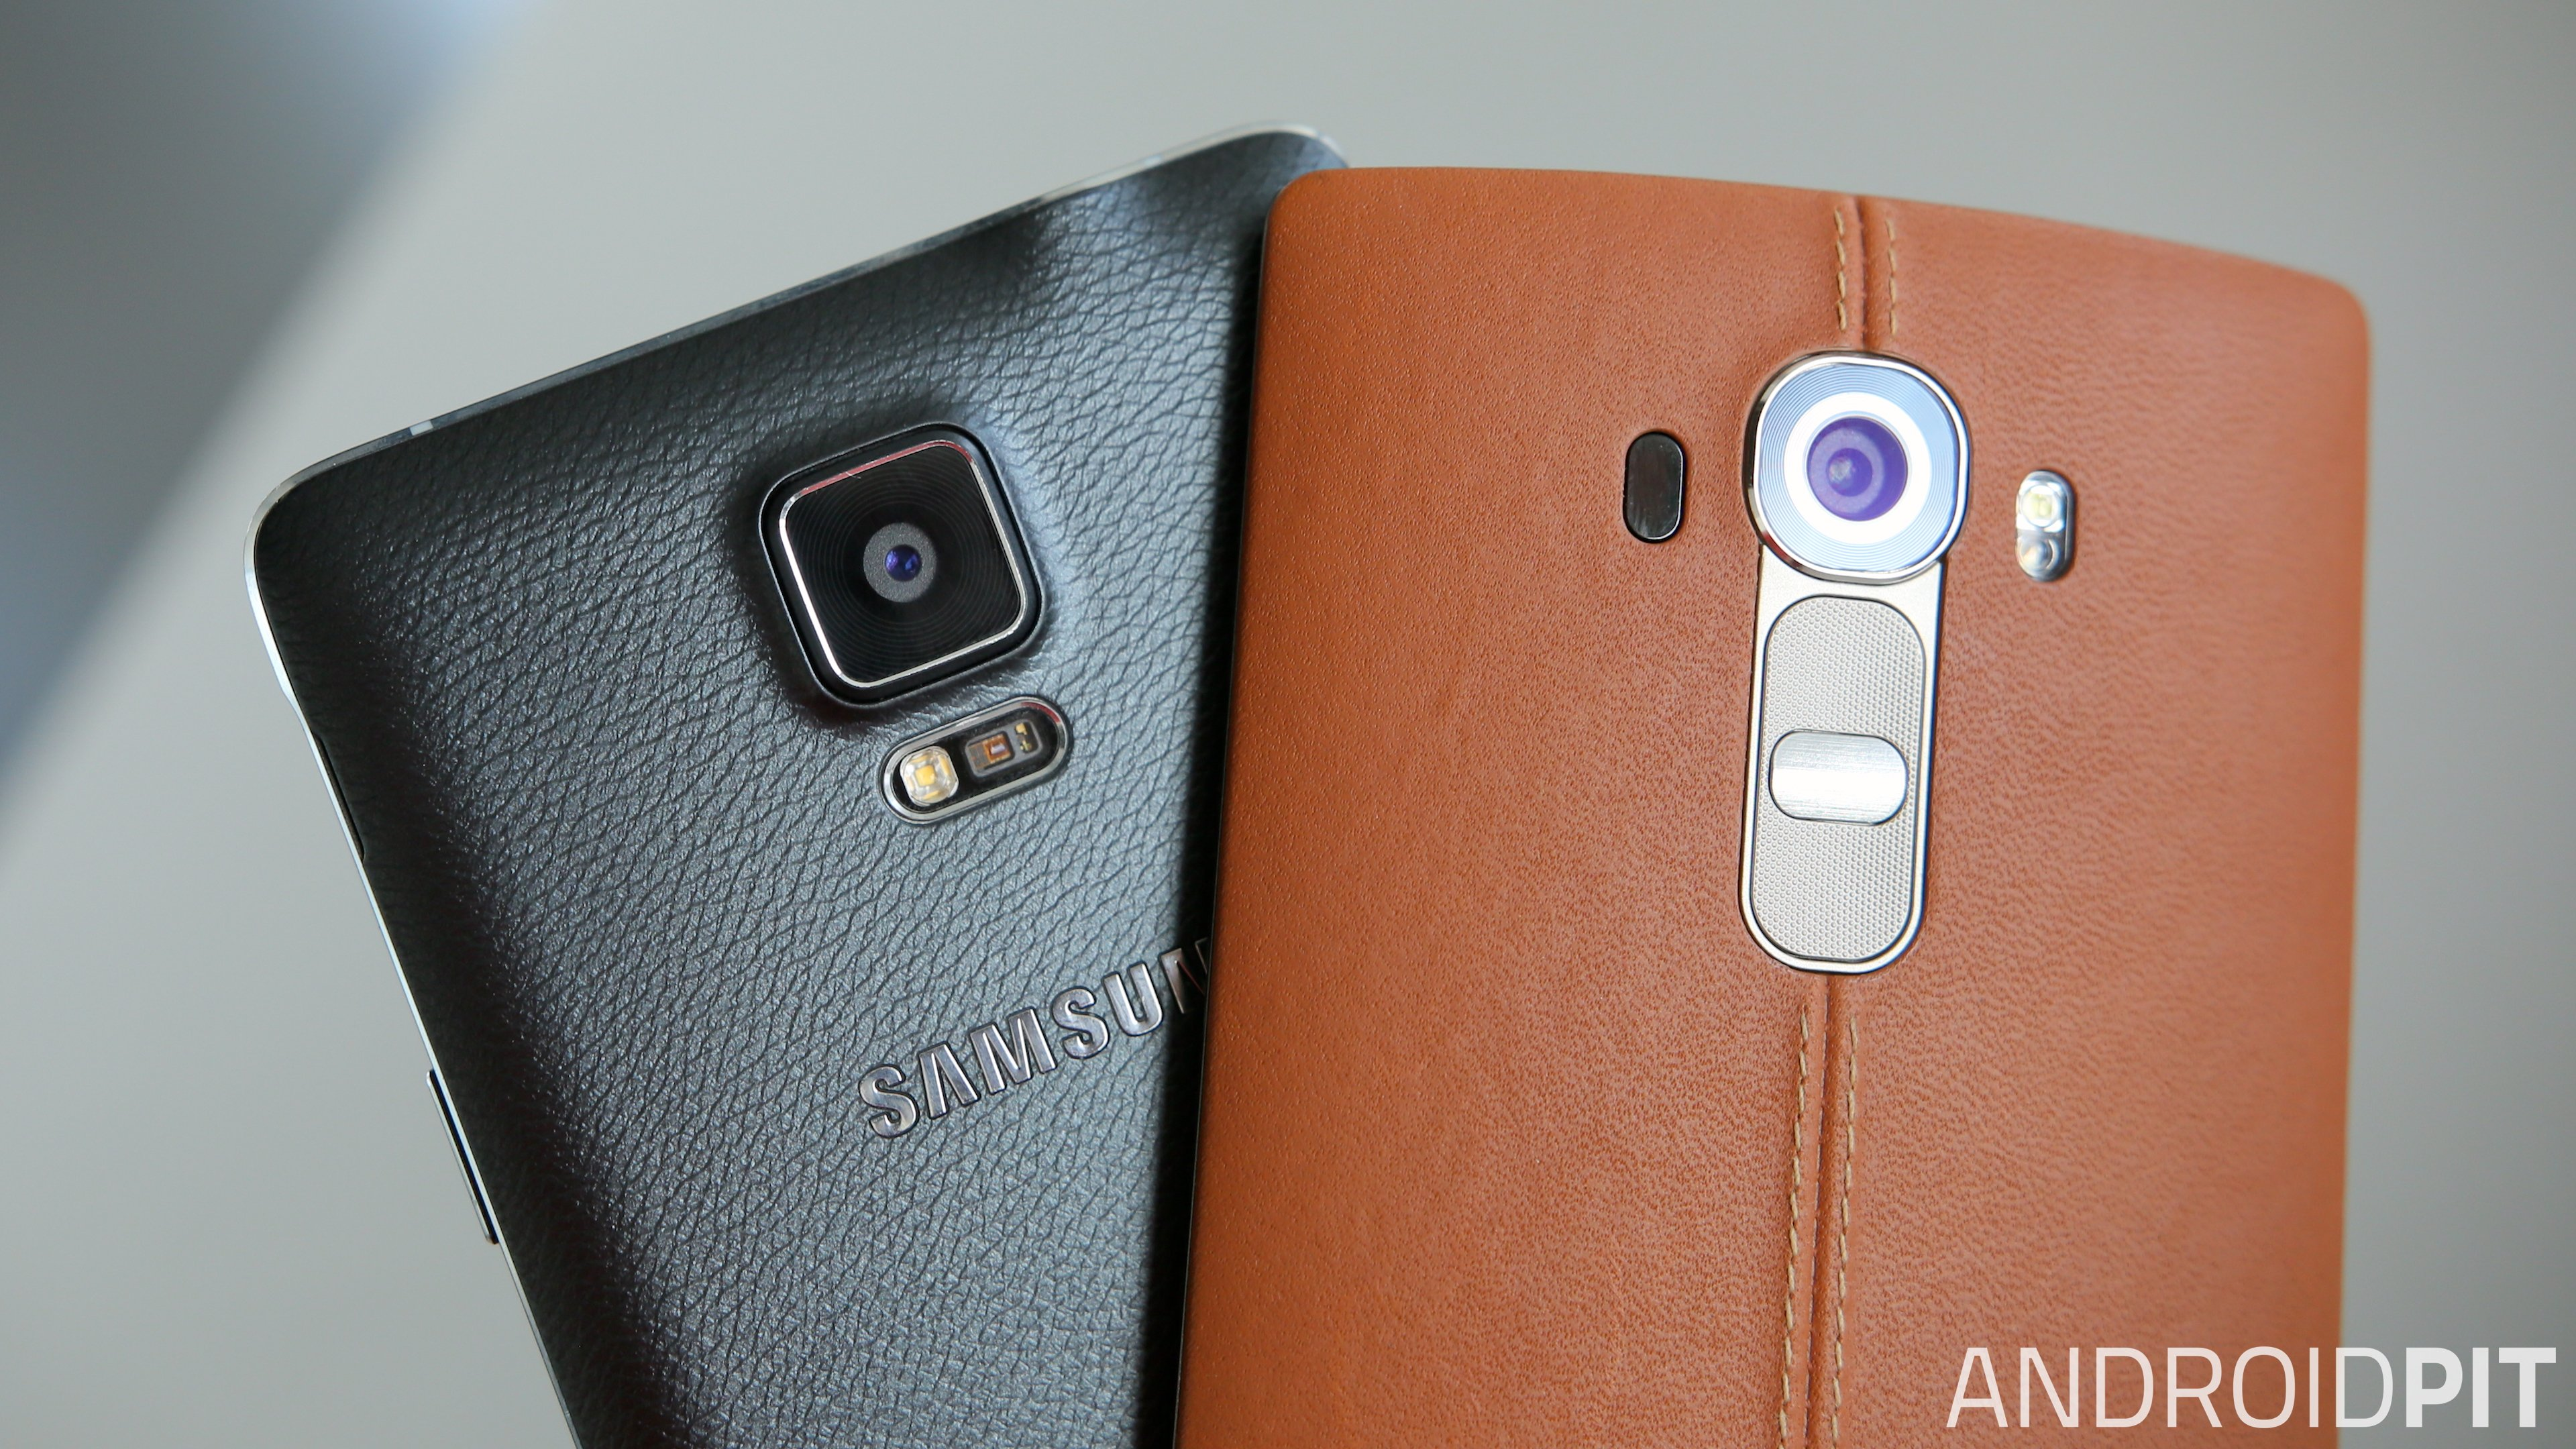 competitive price d6078 8eeff Galaxy Note 4 vs LG G4 comparison: friend or faux? | AndroidPIT